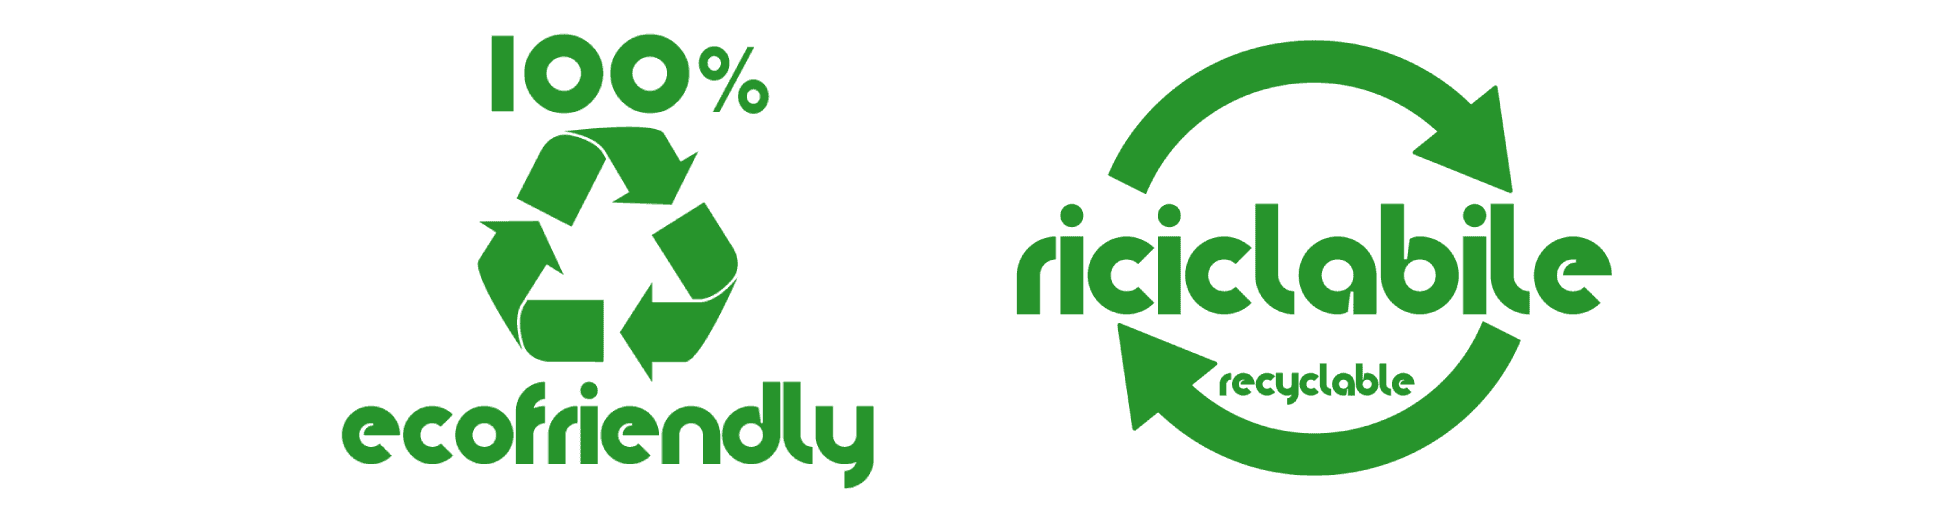 logo 100% ecofriendly - riciclabile